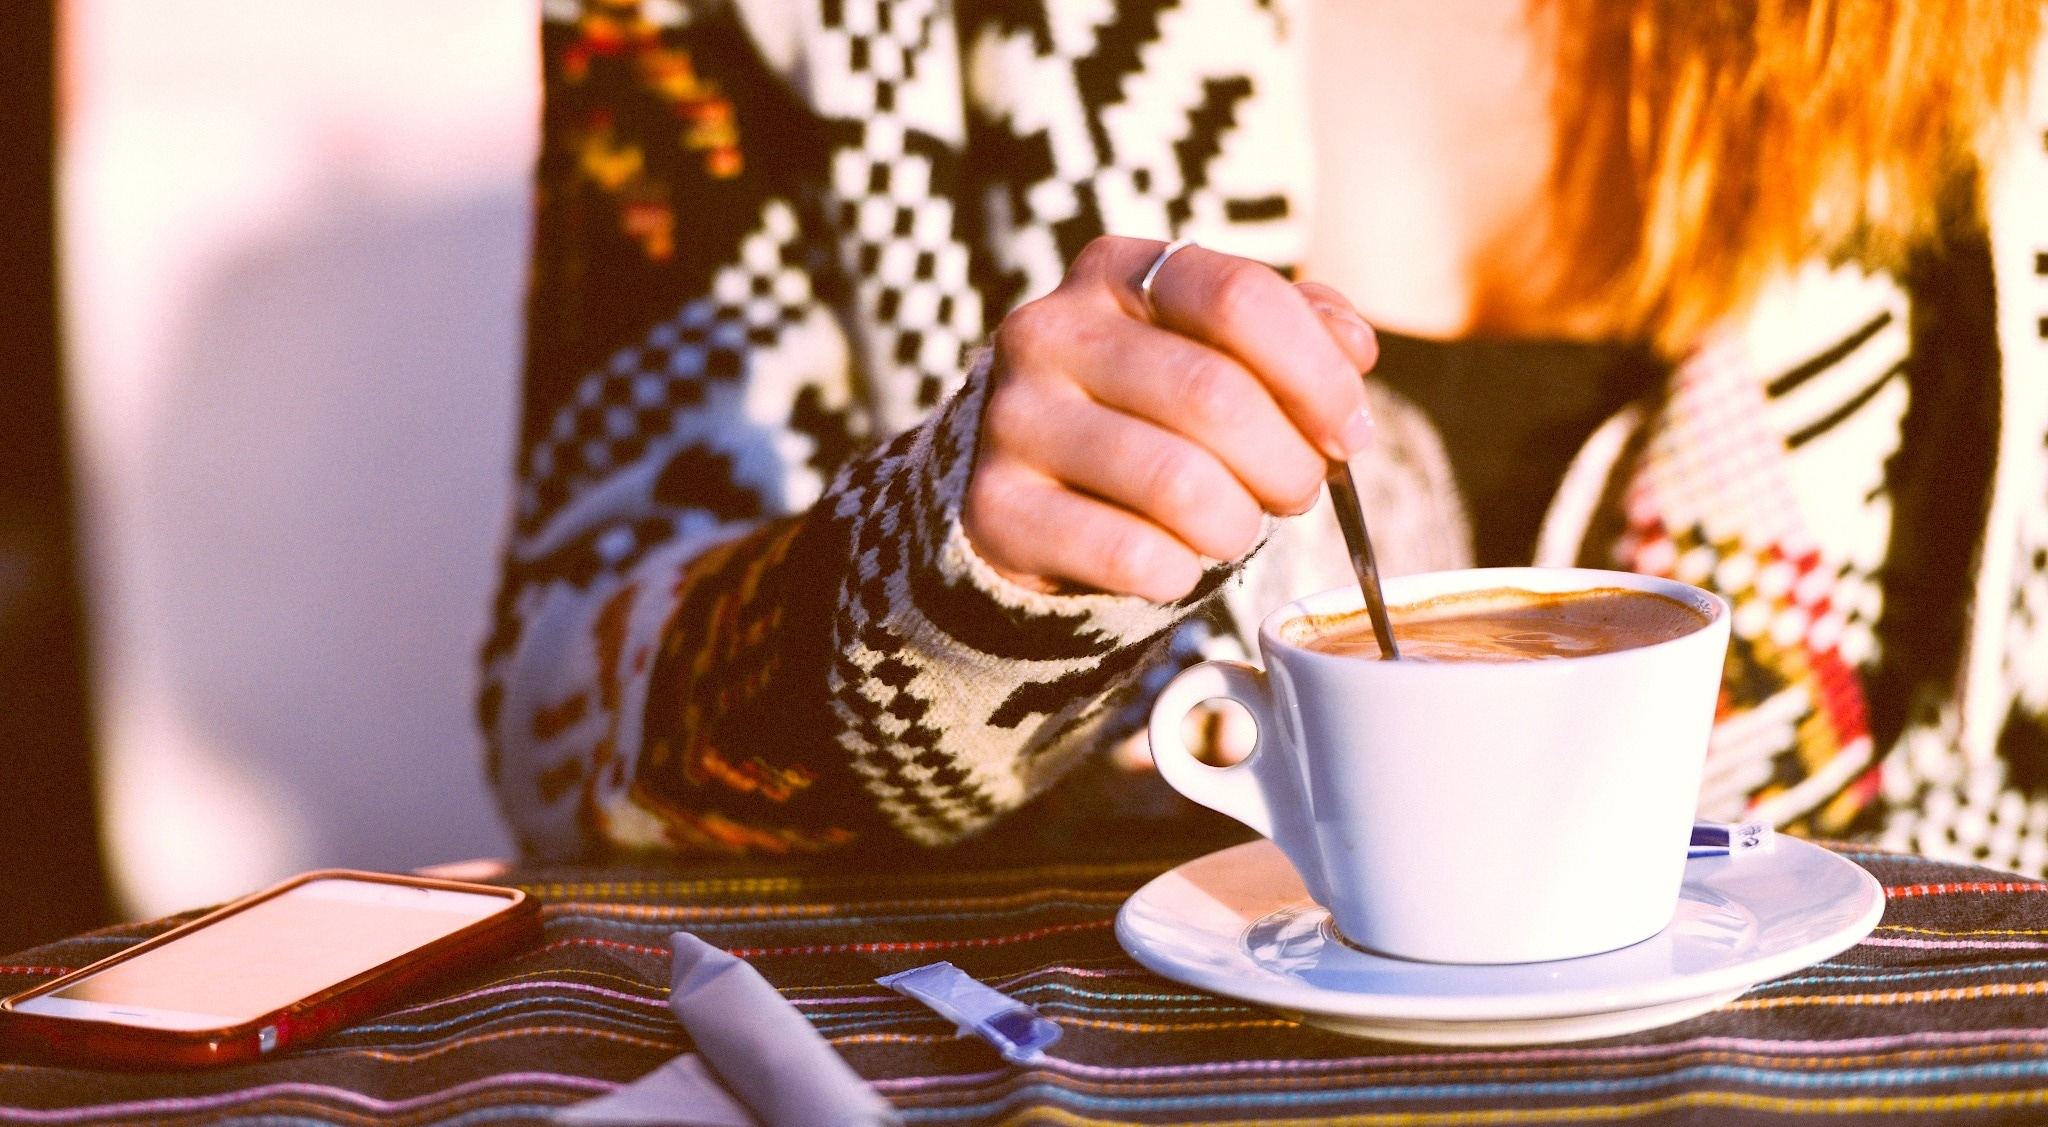 Fresh Brew: These are the Top 20 Coffee & Tea Micro-Influencers to Follow Right Now